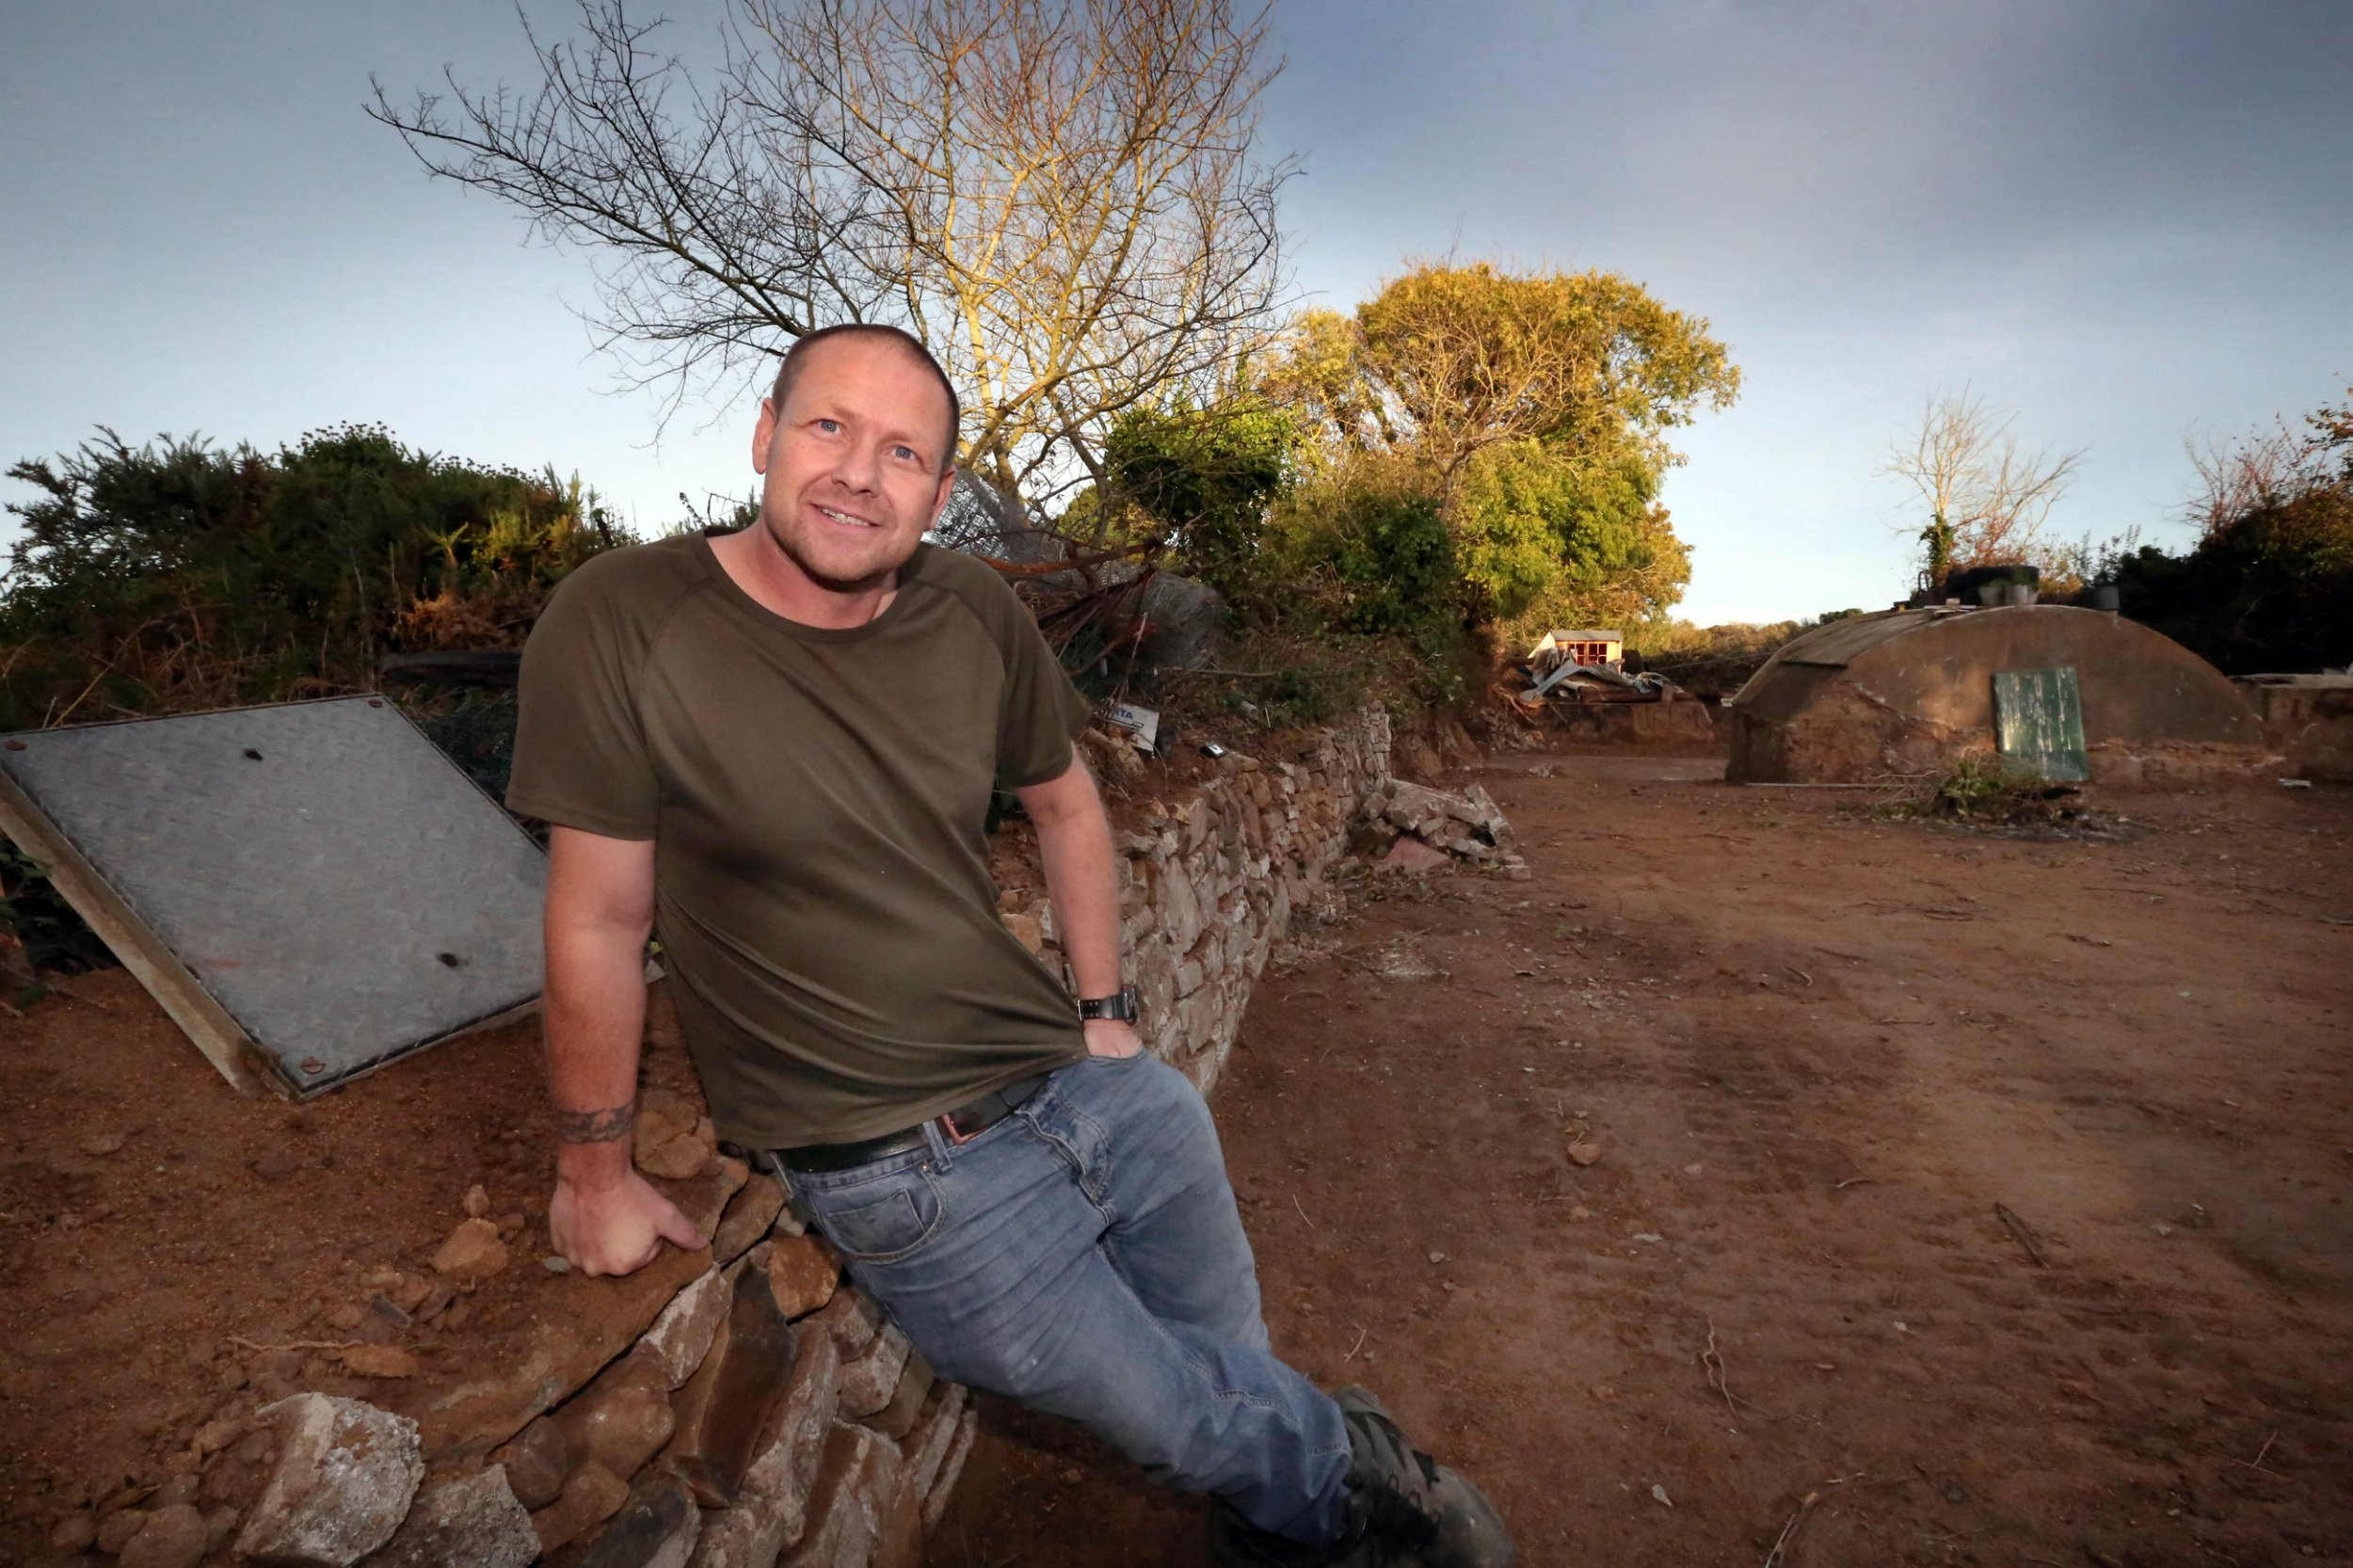 File photo of Steve Ogier, 46, October 11 2018. See story SWPLking.A man who declared his land its own country to evade planning laws is taking his appeal to the UN after it was thrown out of a court.Steve Ogie owns a plot of land he called Everland and is campaigning to have it classified as an independent country. The battle was thrown out of the Royal Court on Guernsey as it was ruled a country must have a population and that worms do not count, despite Steve's argument to the contrary.Now Steve, 46, has vowed to continue his fight and will be taking his unusual legal battle to the UN.